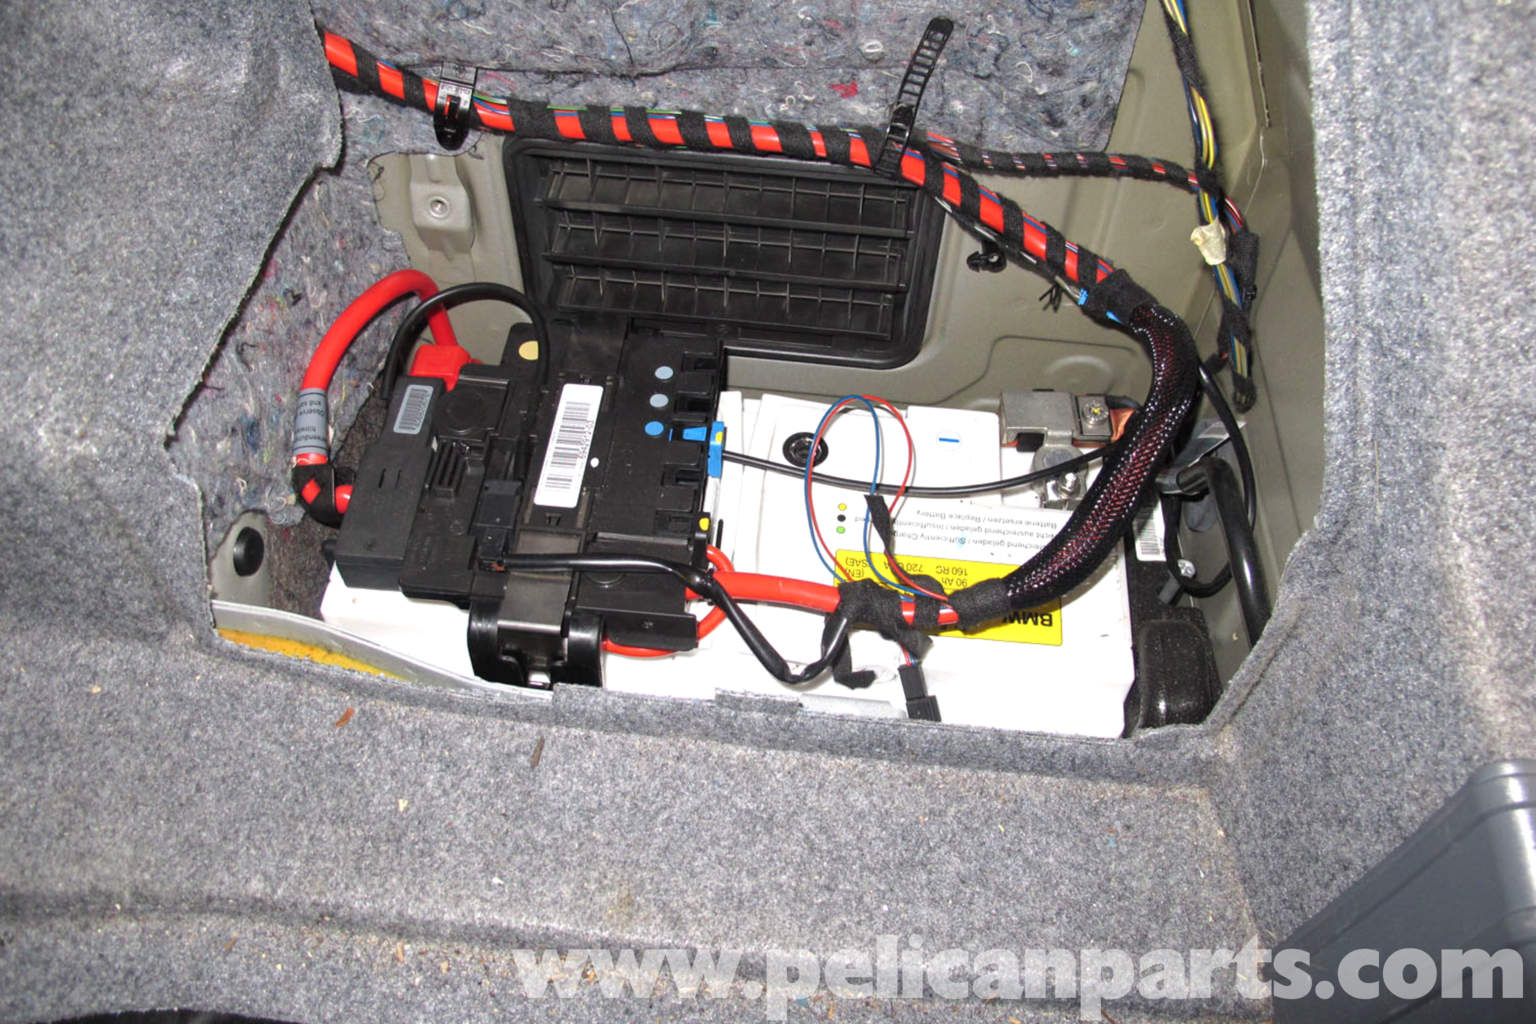 pic01 e90 m3 fuse box e39 fuse box wiring diagram ~ odicis e90 m3 fuse box location at reclaimingppi.co